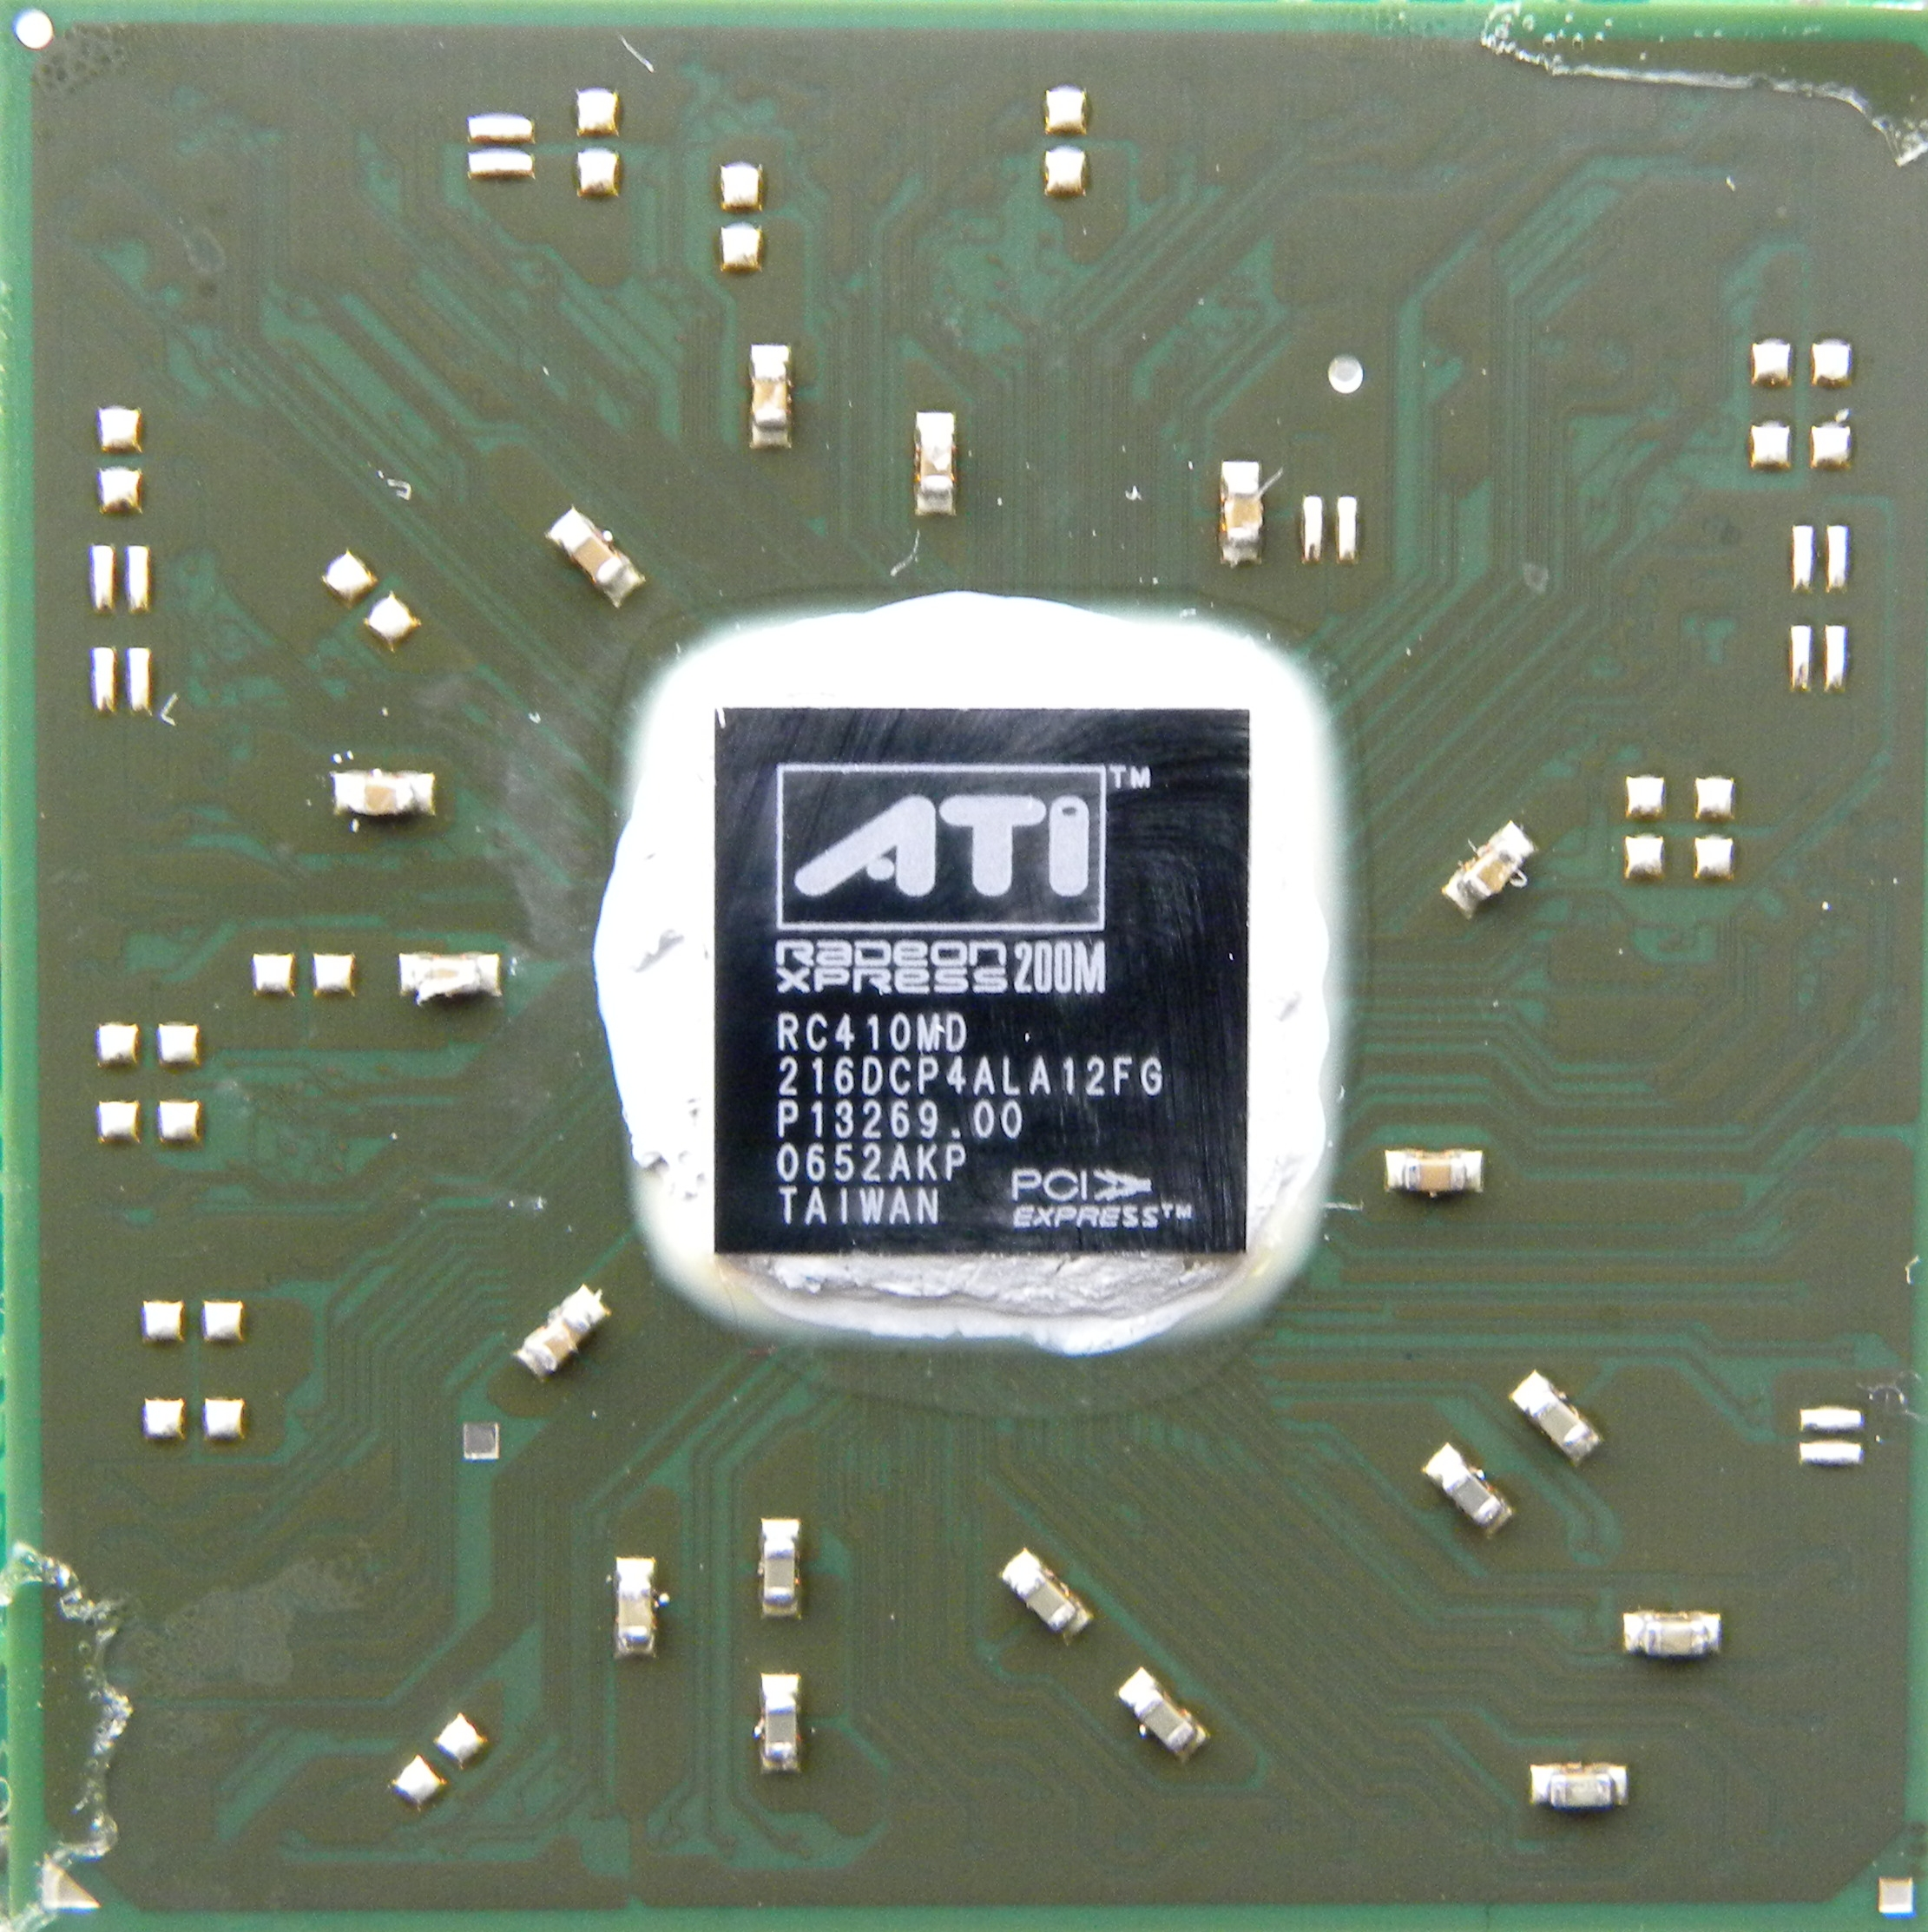 Ati sb600 crossfire xpress 3200: rd580 for am2.